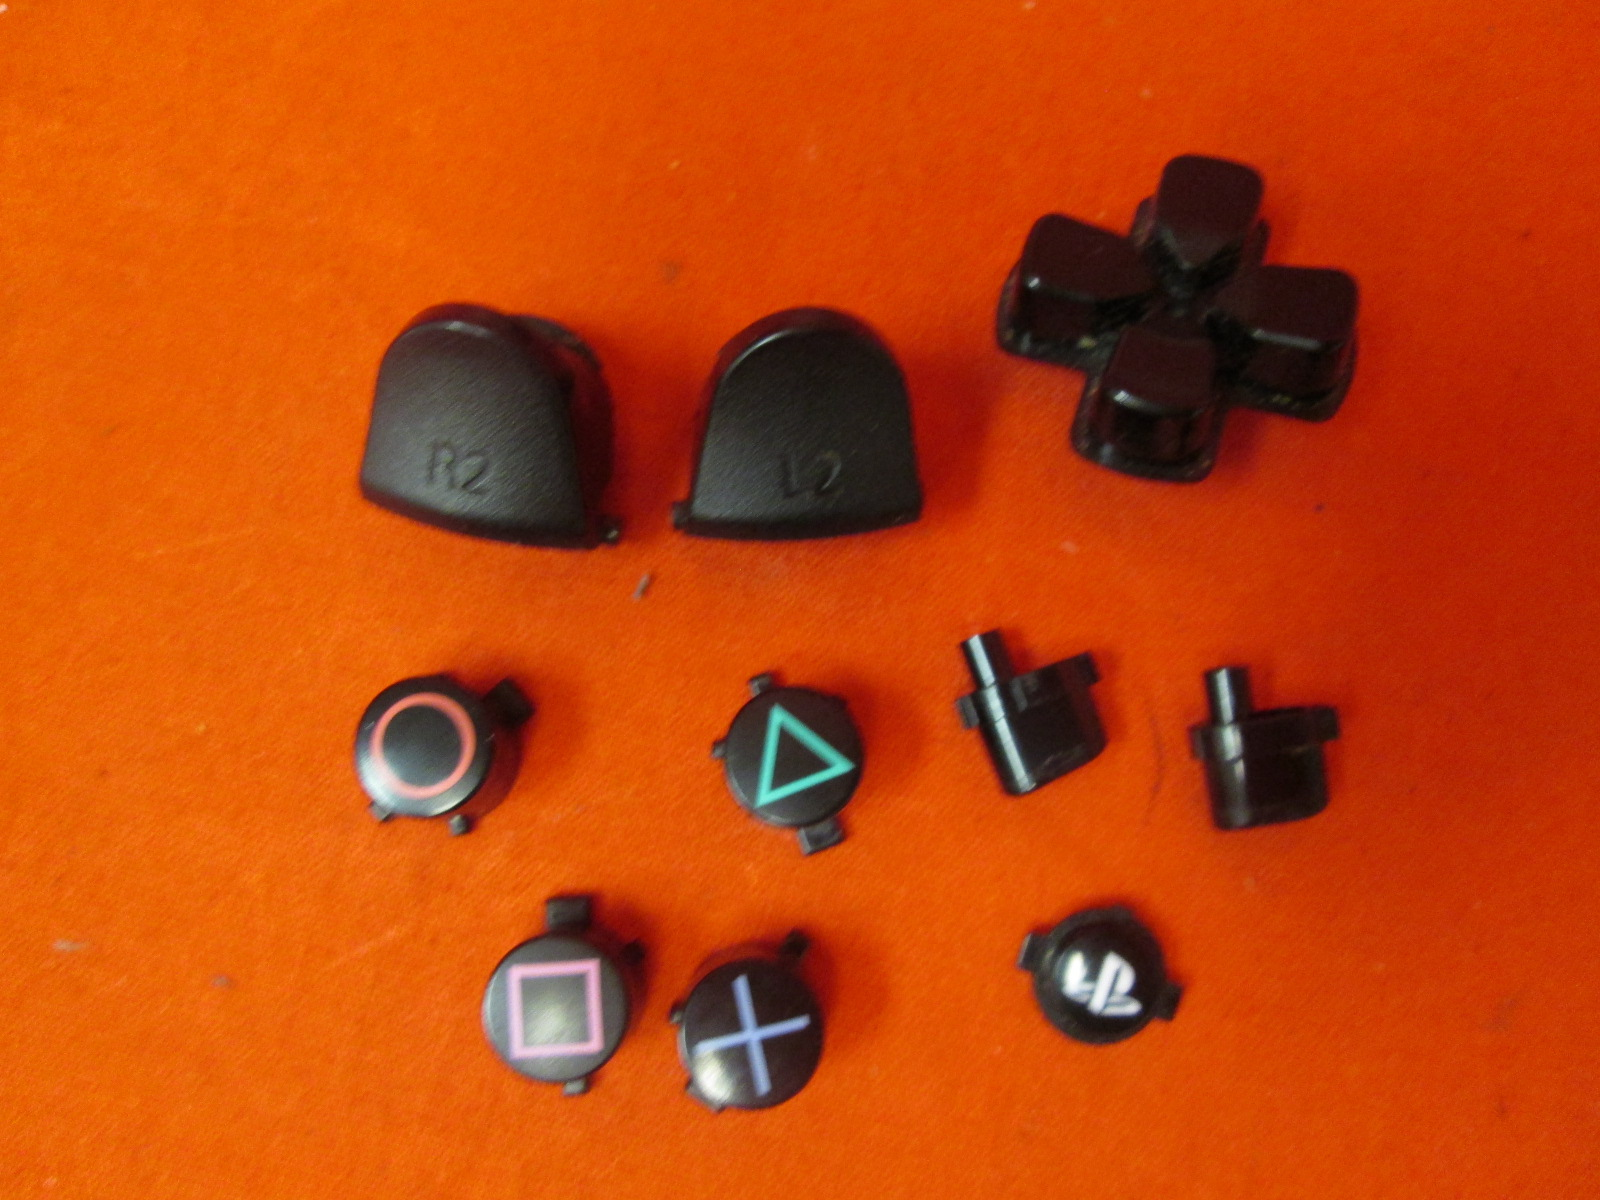 Sony OEM Replacement Buttons For PlayStation 4 Controller